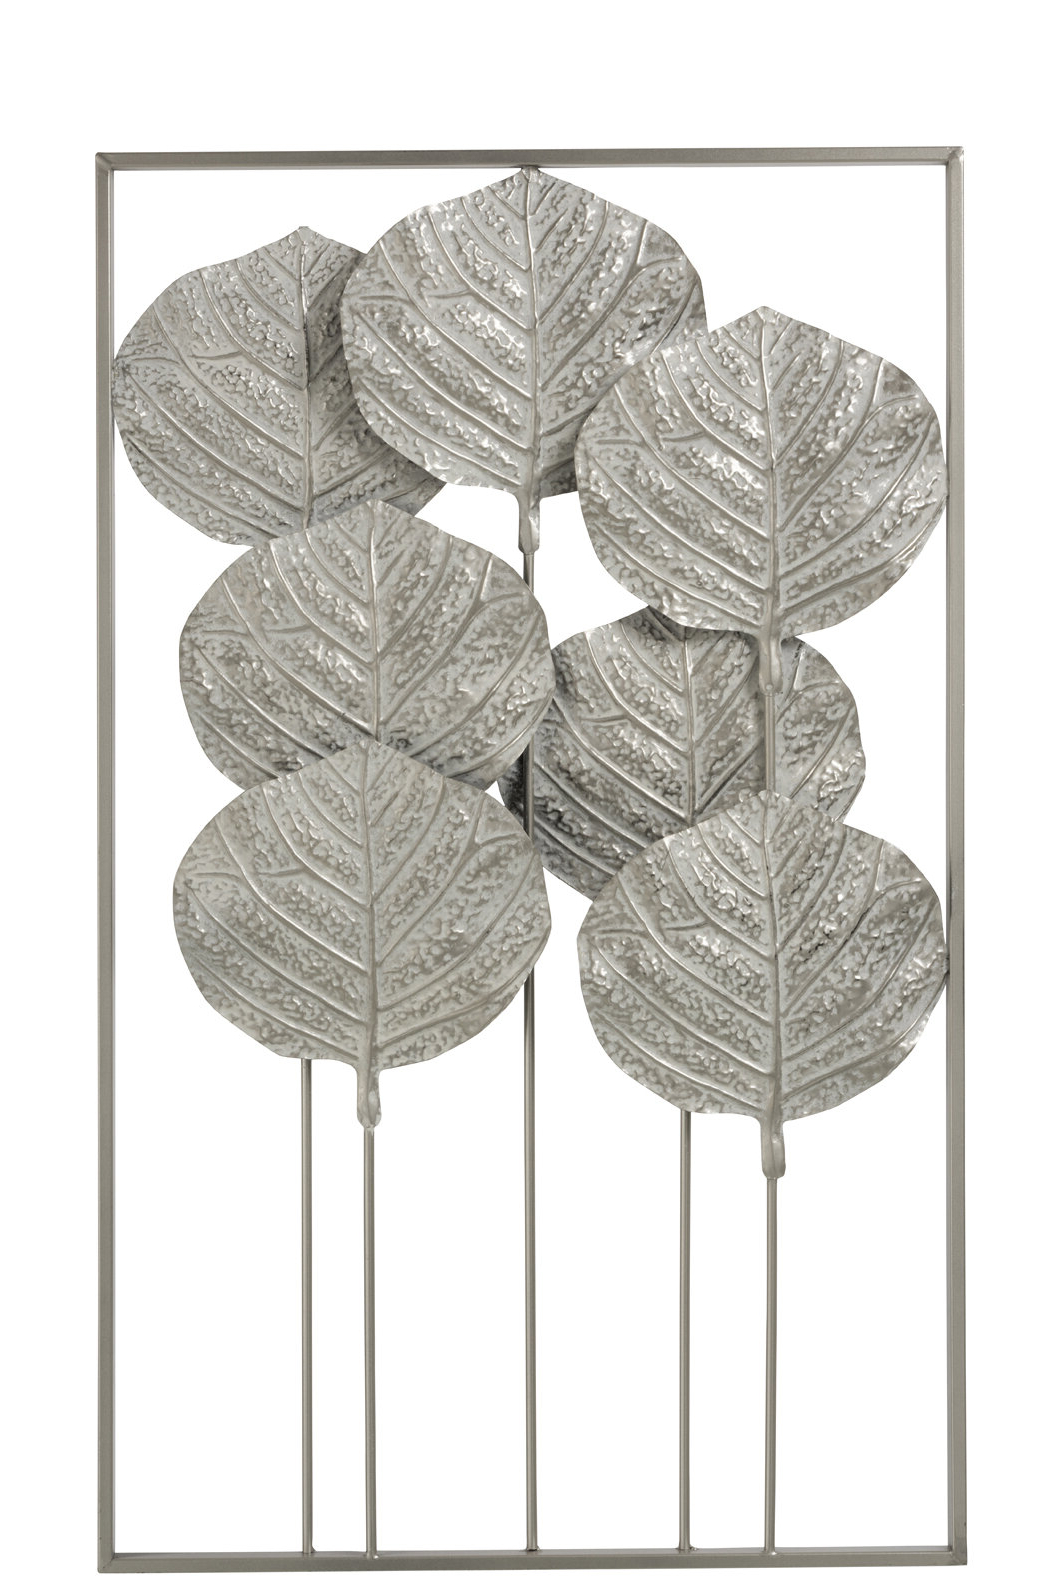 7 Leaves Metal Wall Décor With Regard To Latest Olive/gray Metal Wall Decor By Brayden Studio (View 8 of 20)